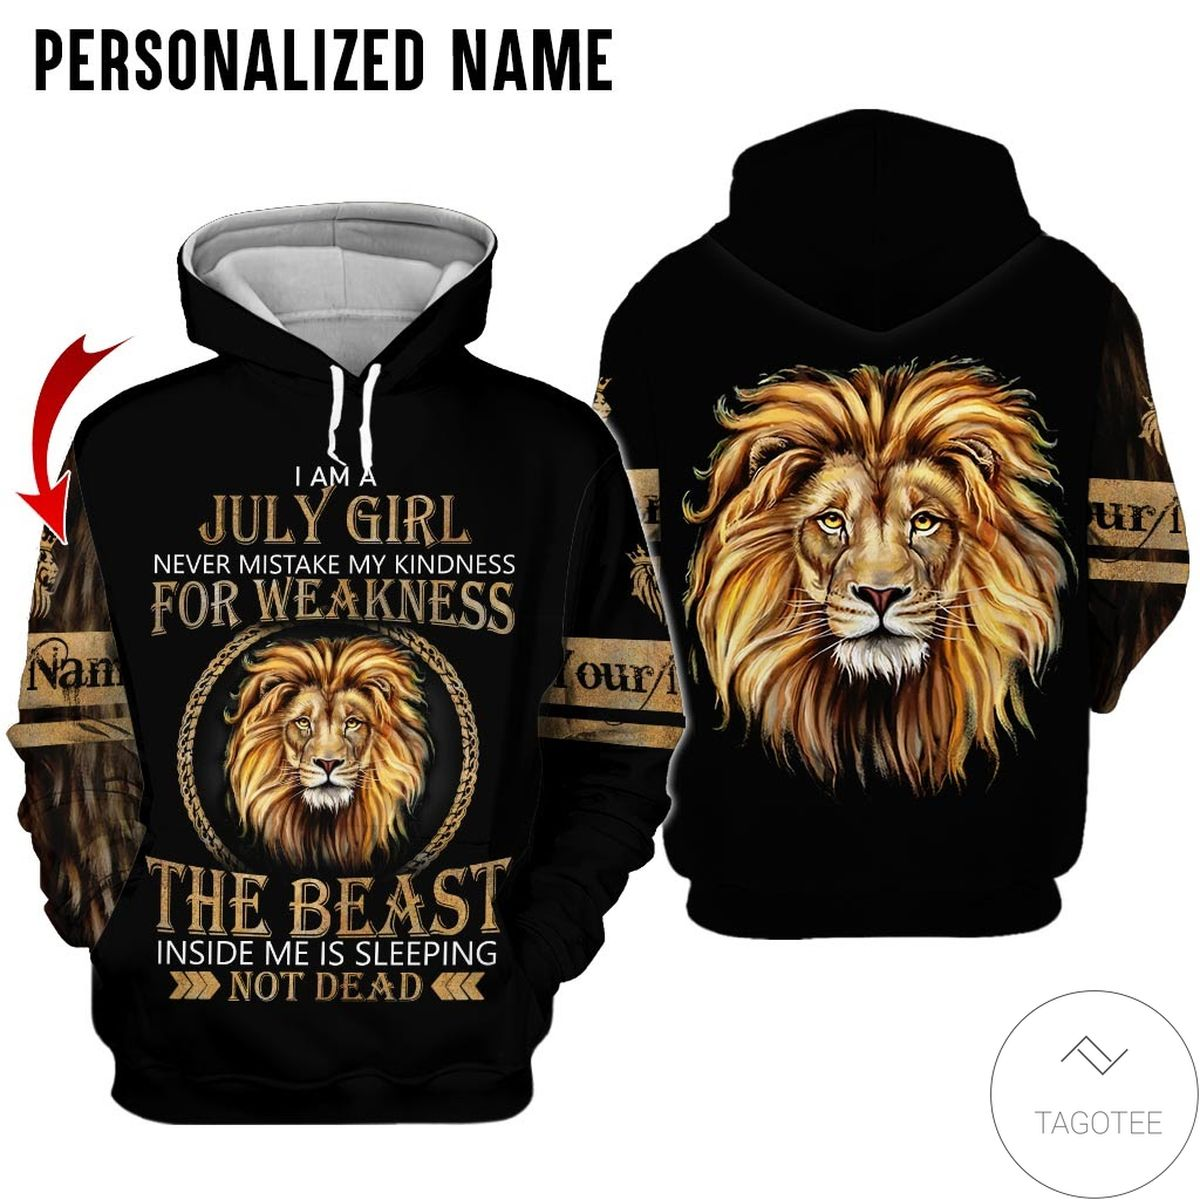 Unique Personalized Namelion I'm July Girl All Over Print Hoodie